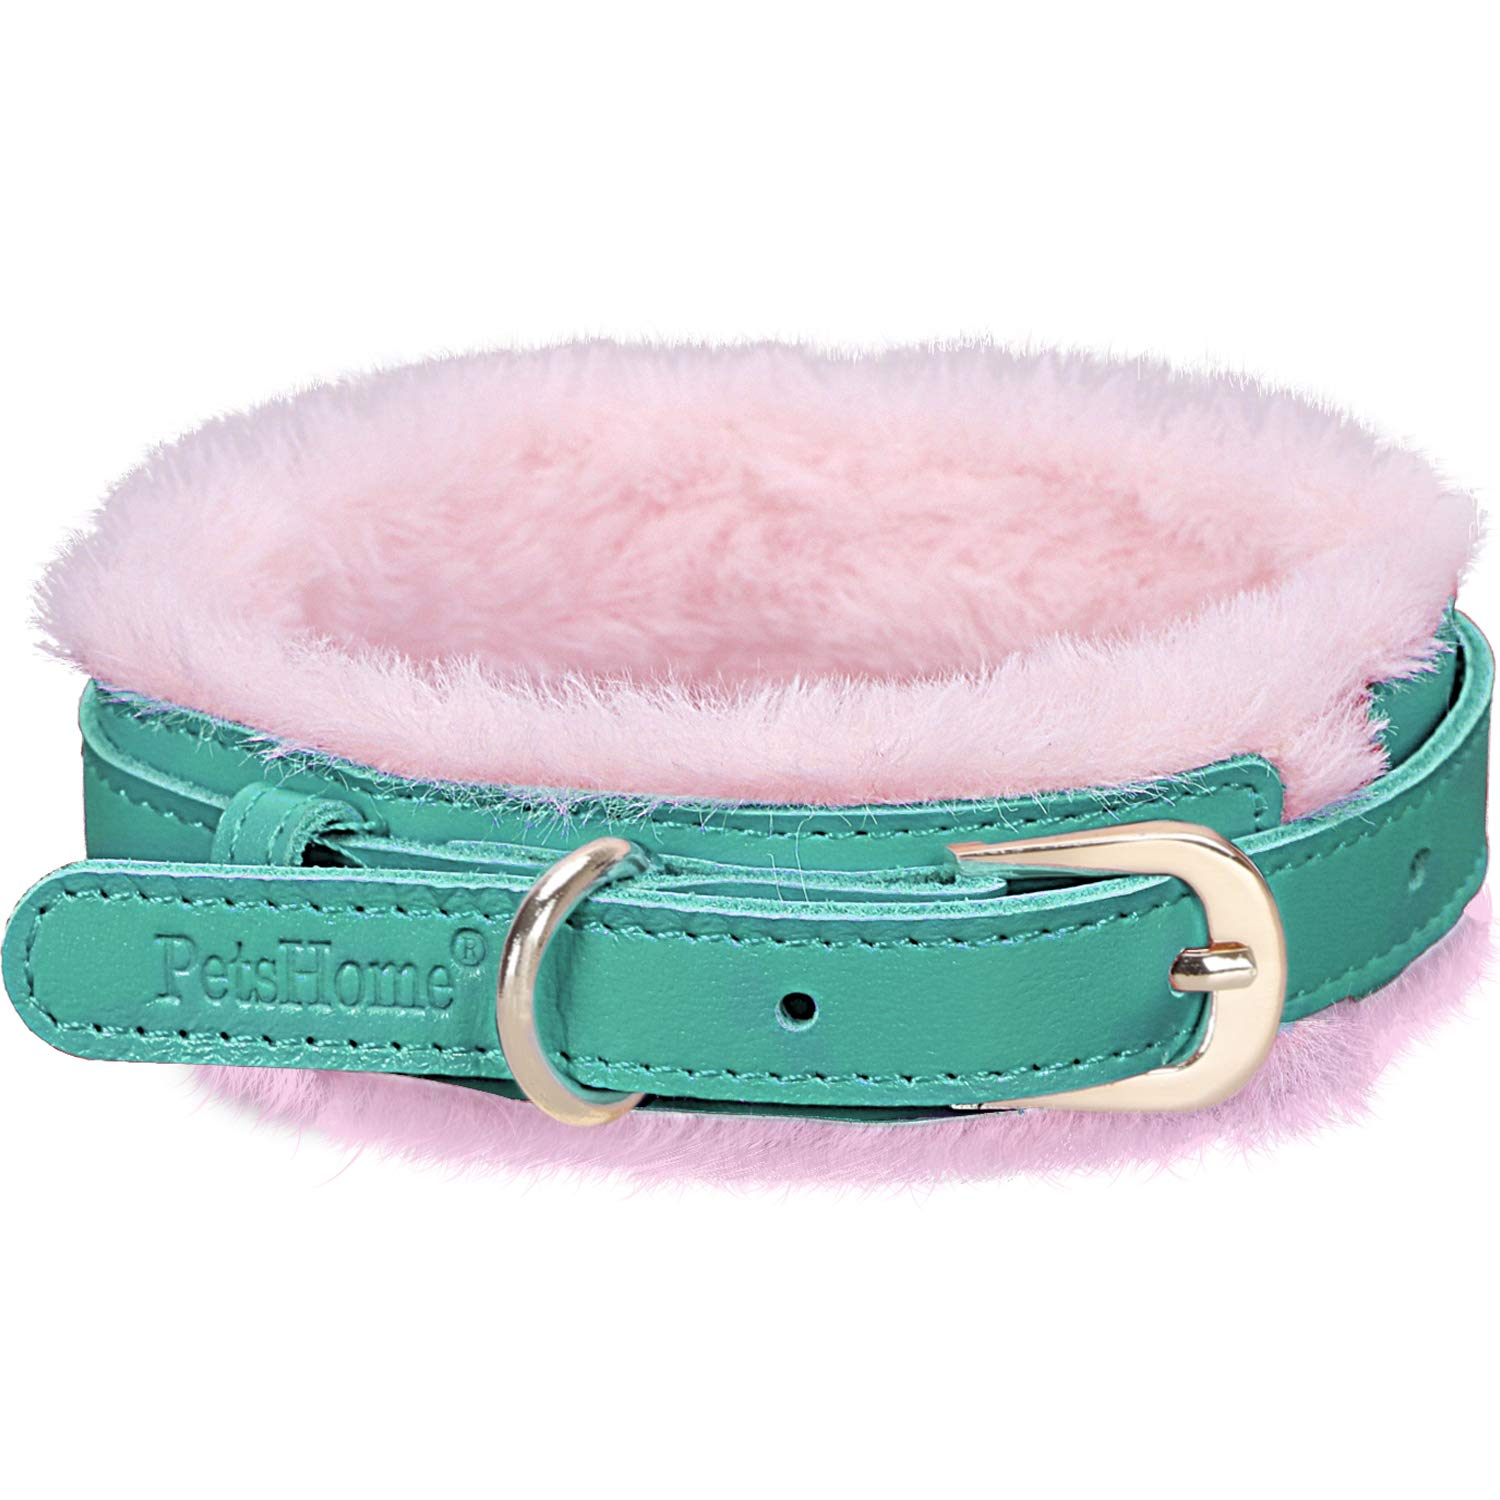 A-Mint Green M A-Mint Green M PetsHome Dog Collar, Cat Collar, [Genuine Leather][Soft Fur] Adjustable Collars for Small Dog and Cat Medium Mint Green